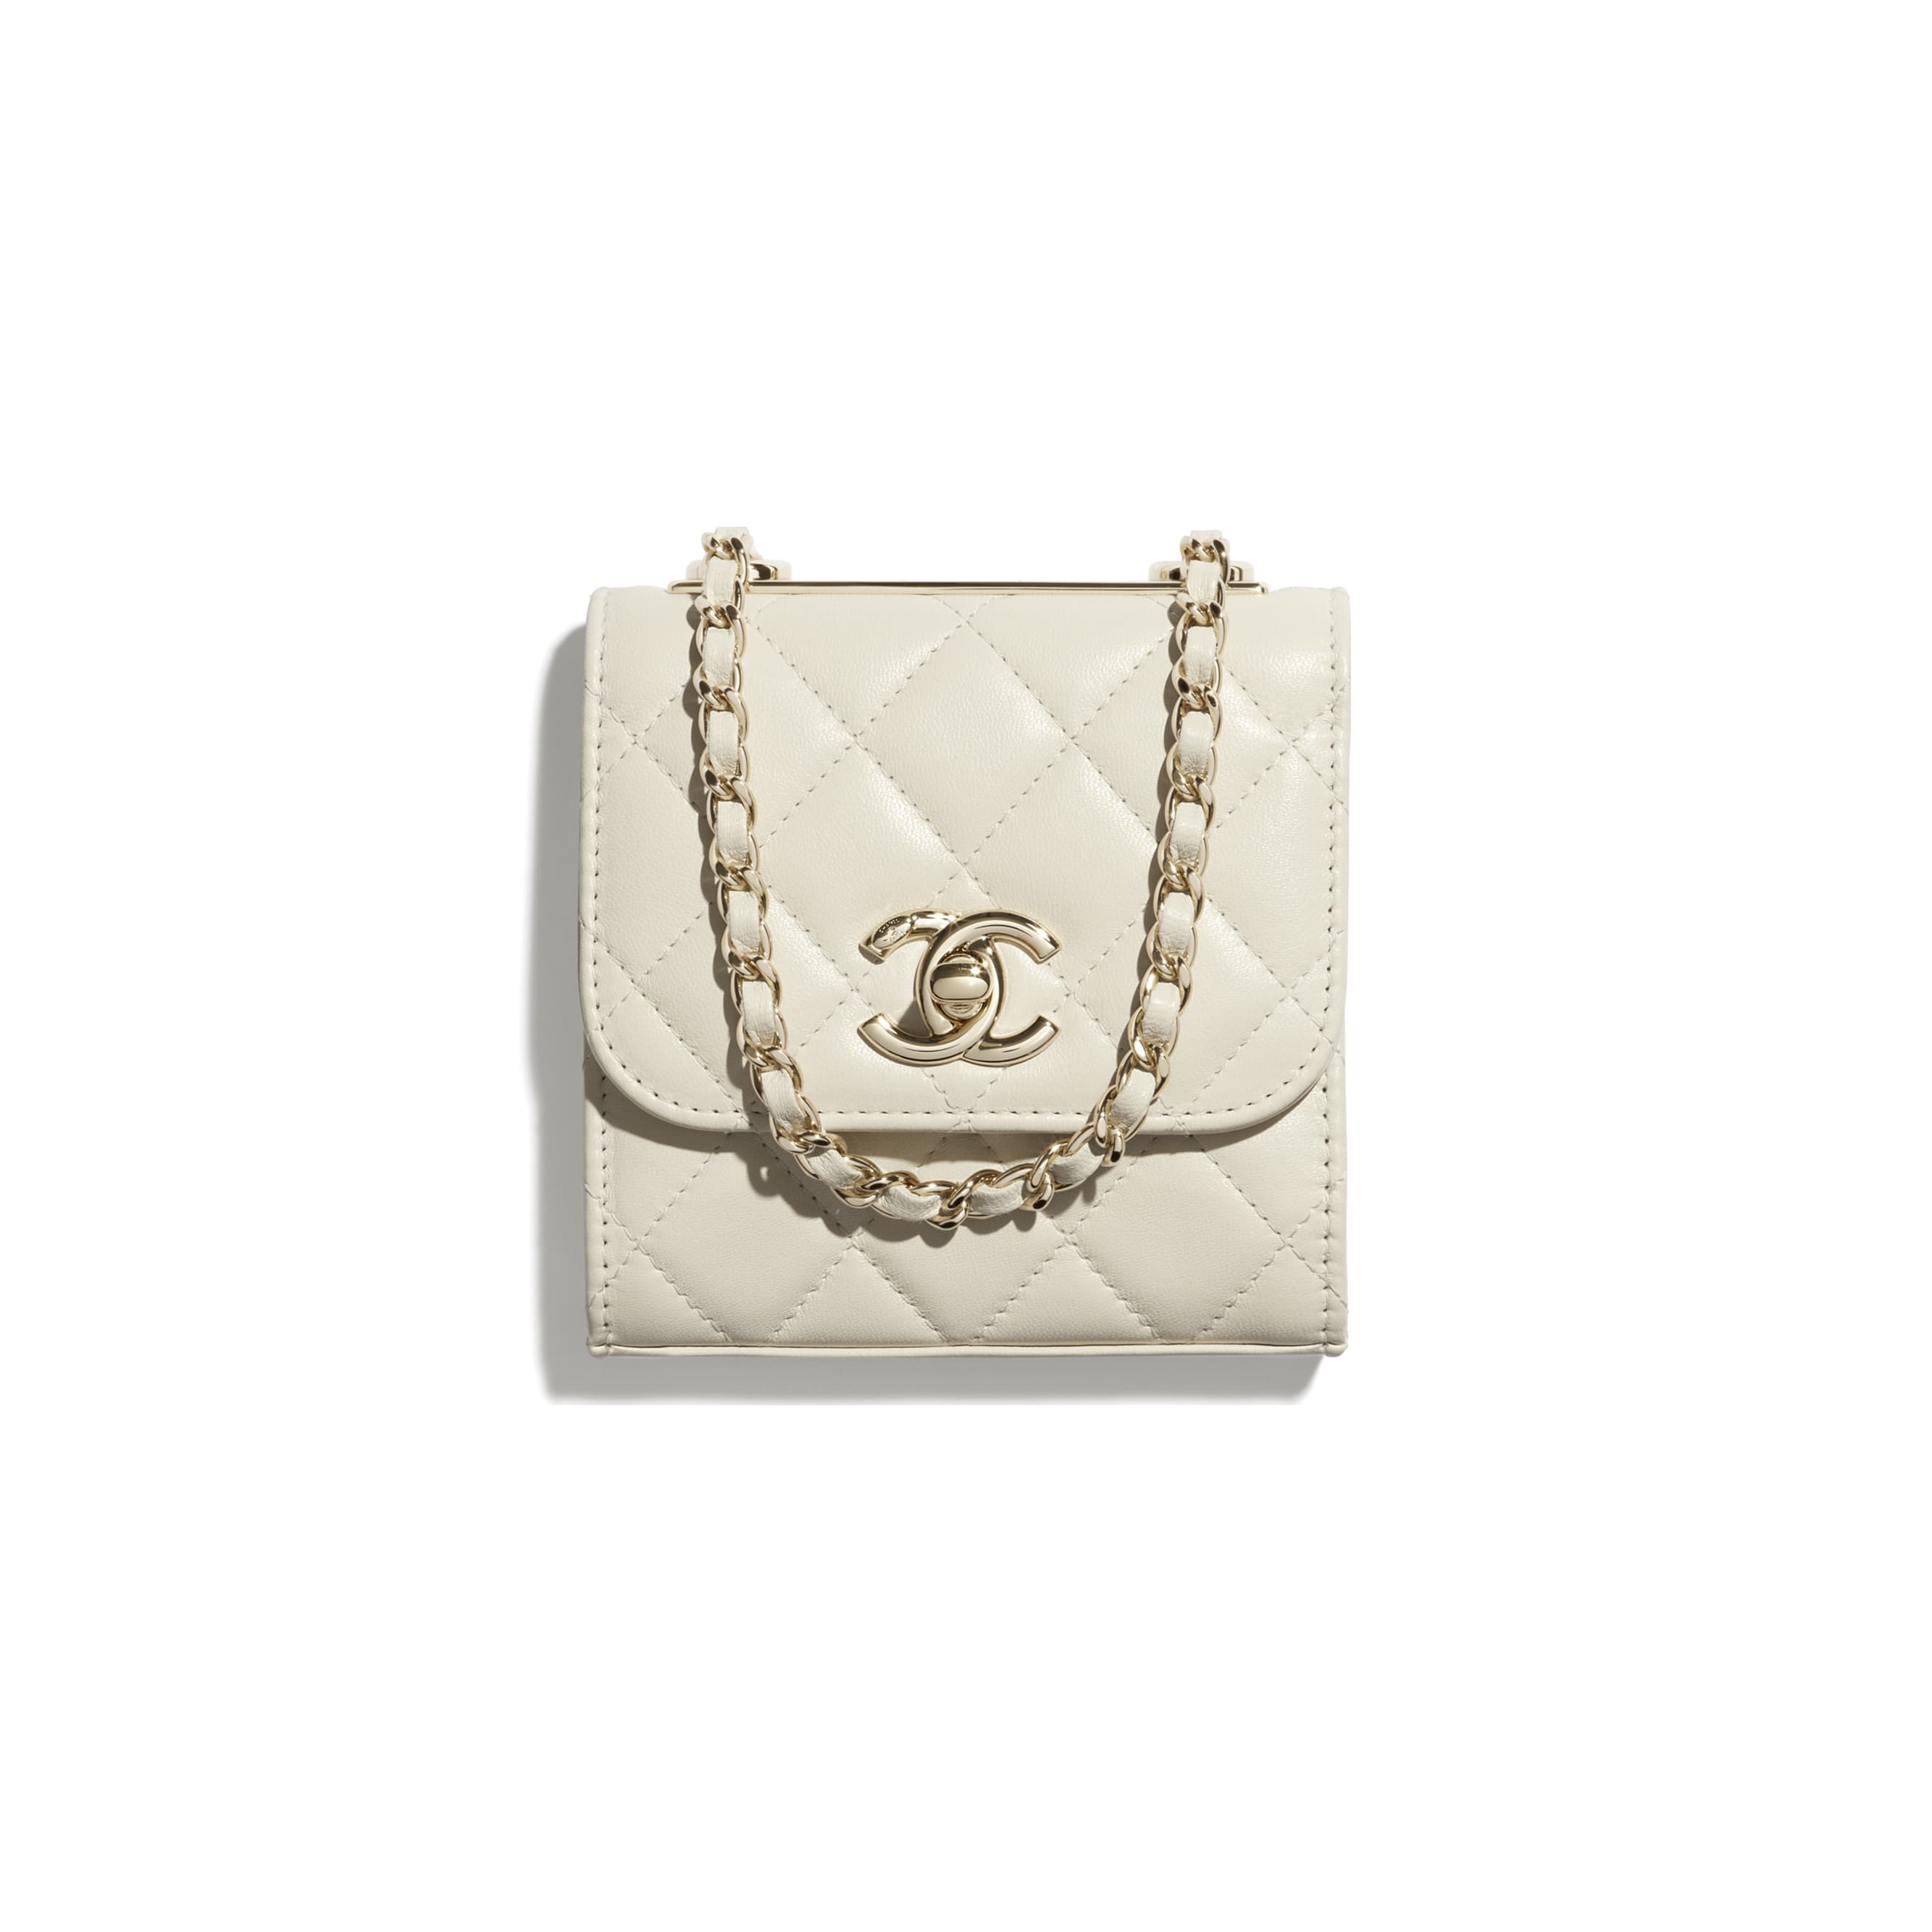 Clutch with Chain - Ecru - Lambskin & Gold-Tone Metal - CHANEL - Default view - see standard sized version